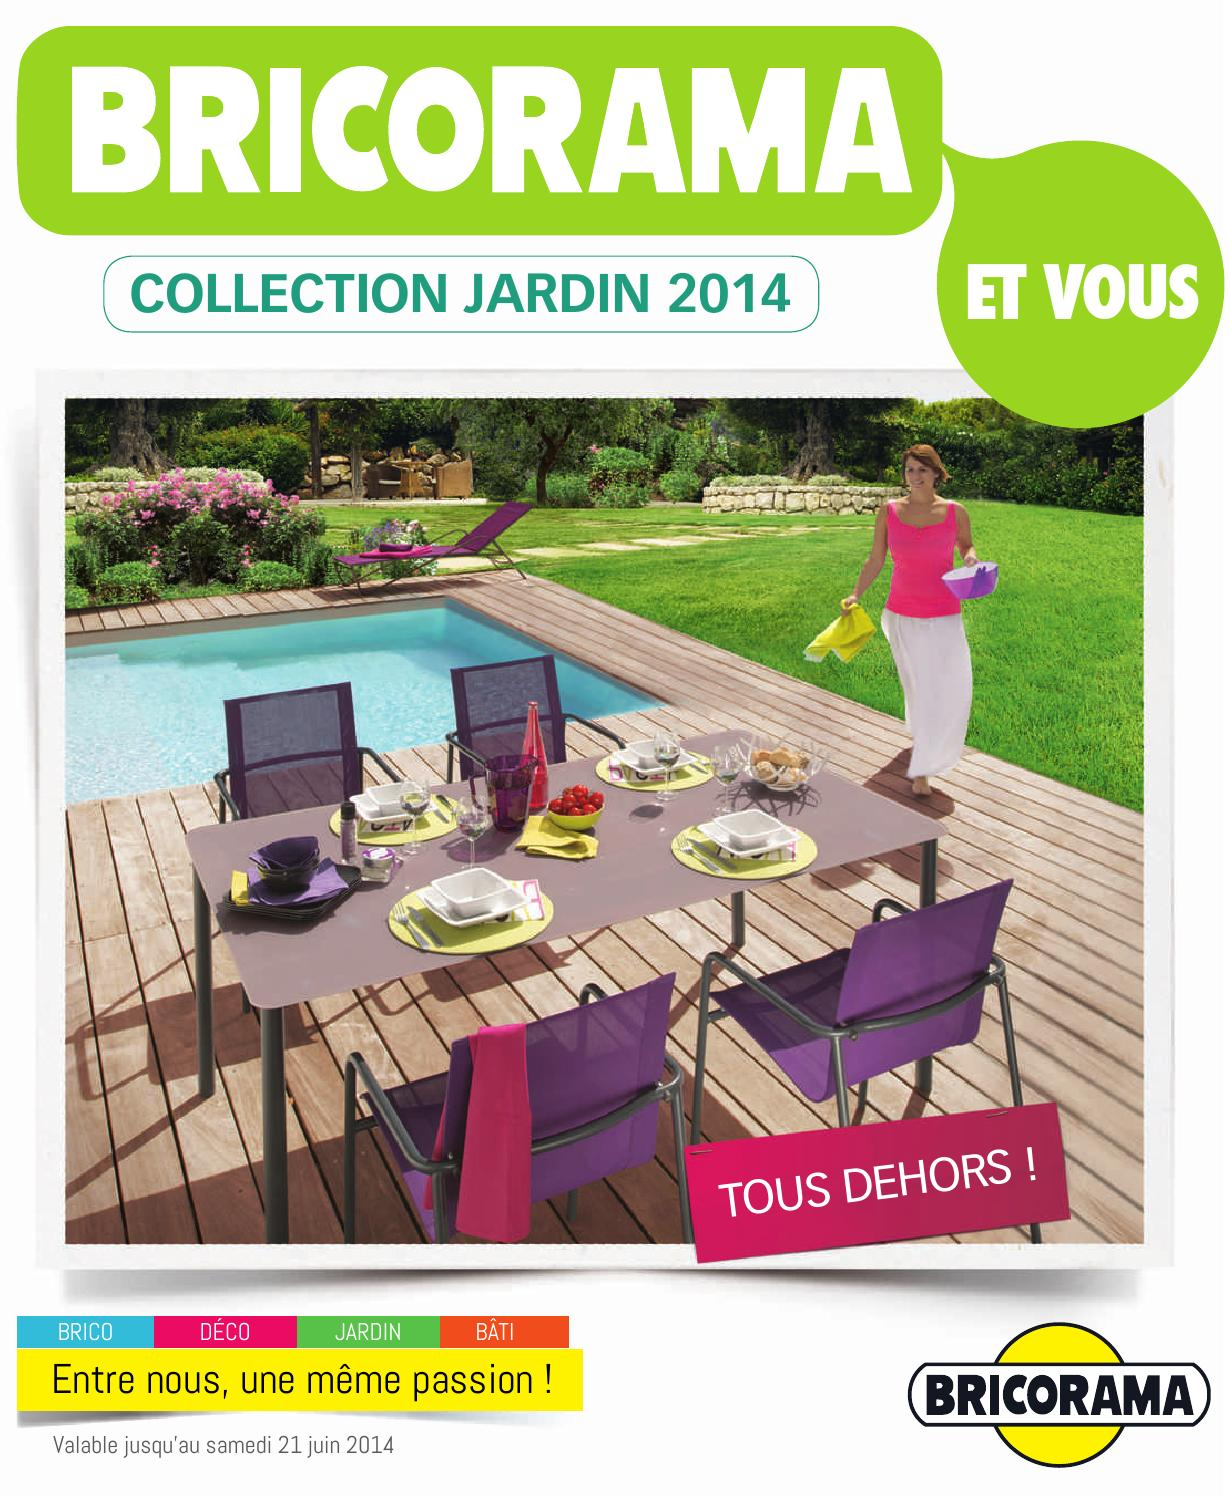 Spot Led Exterieur Bricorama Catalogue Bricorama Jardin 2014